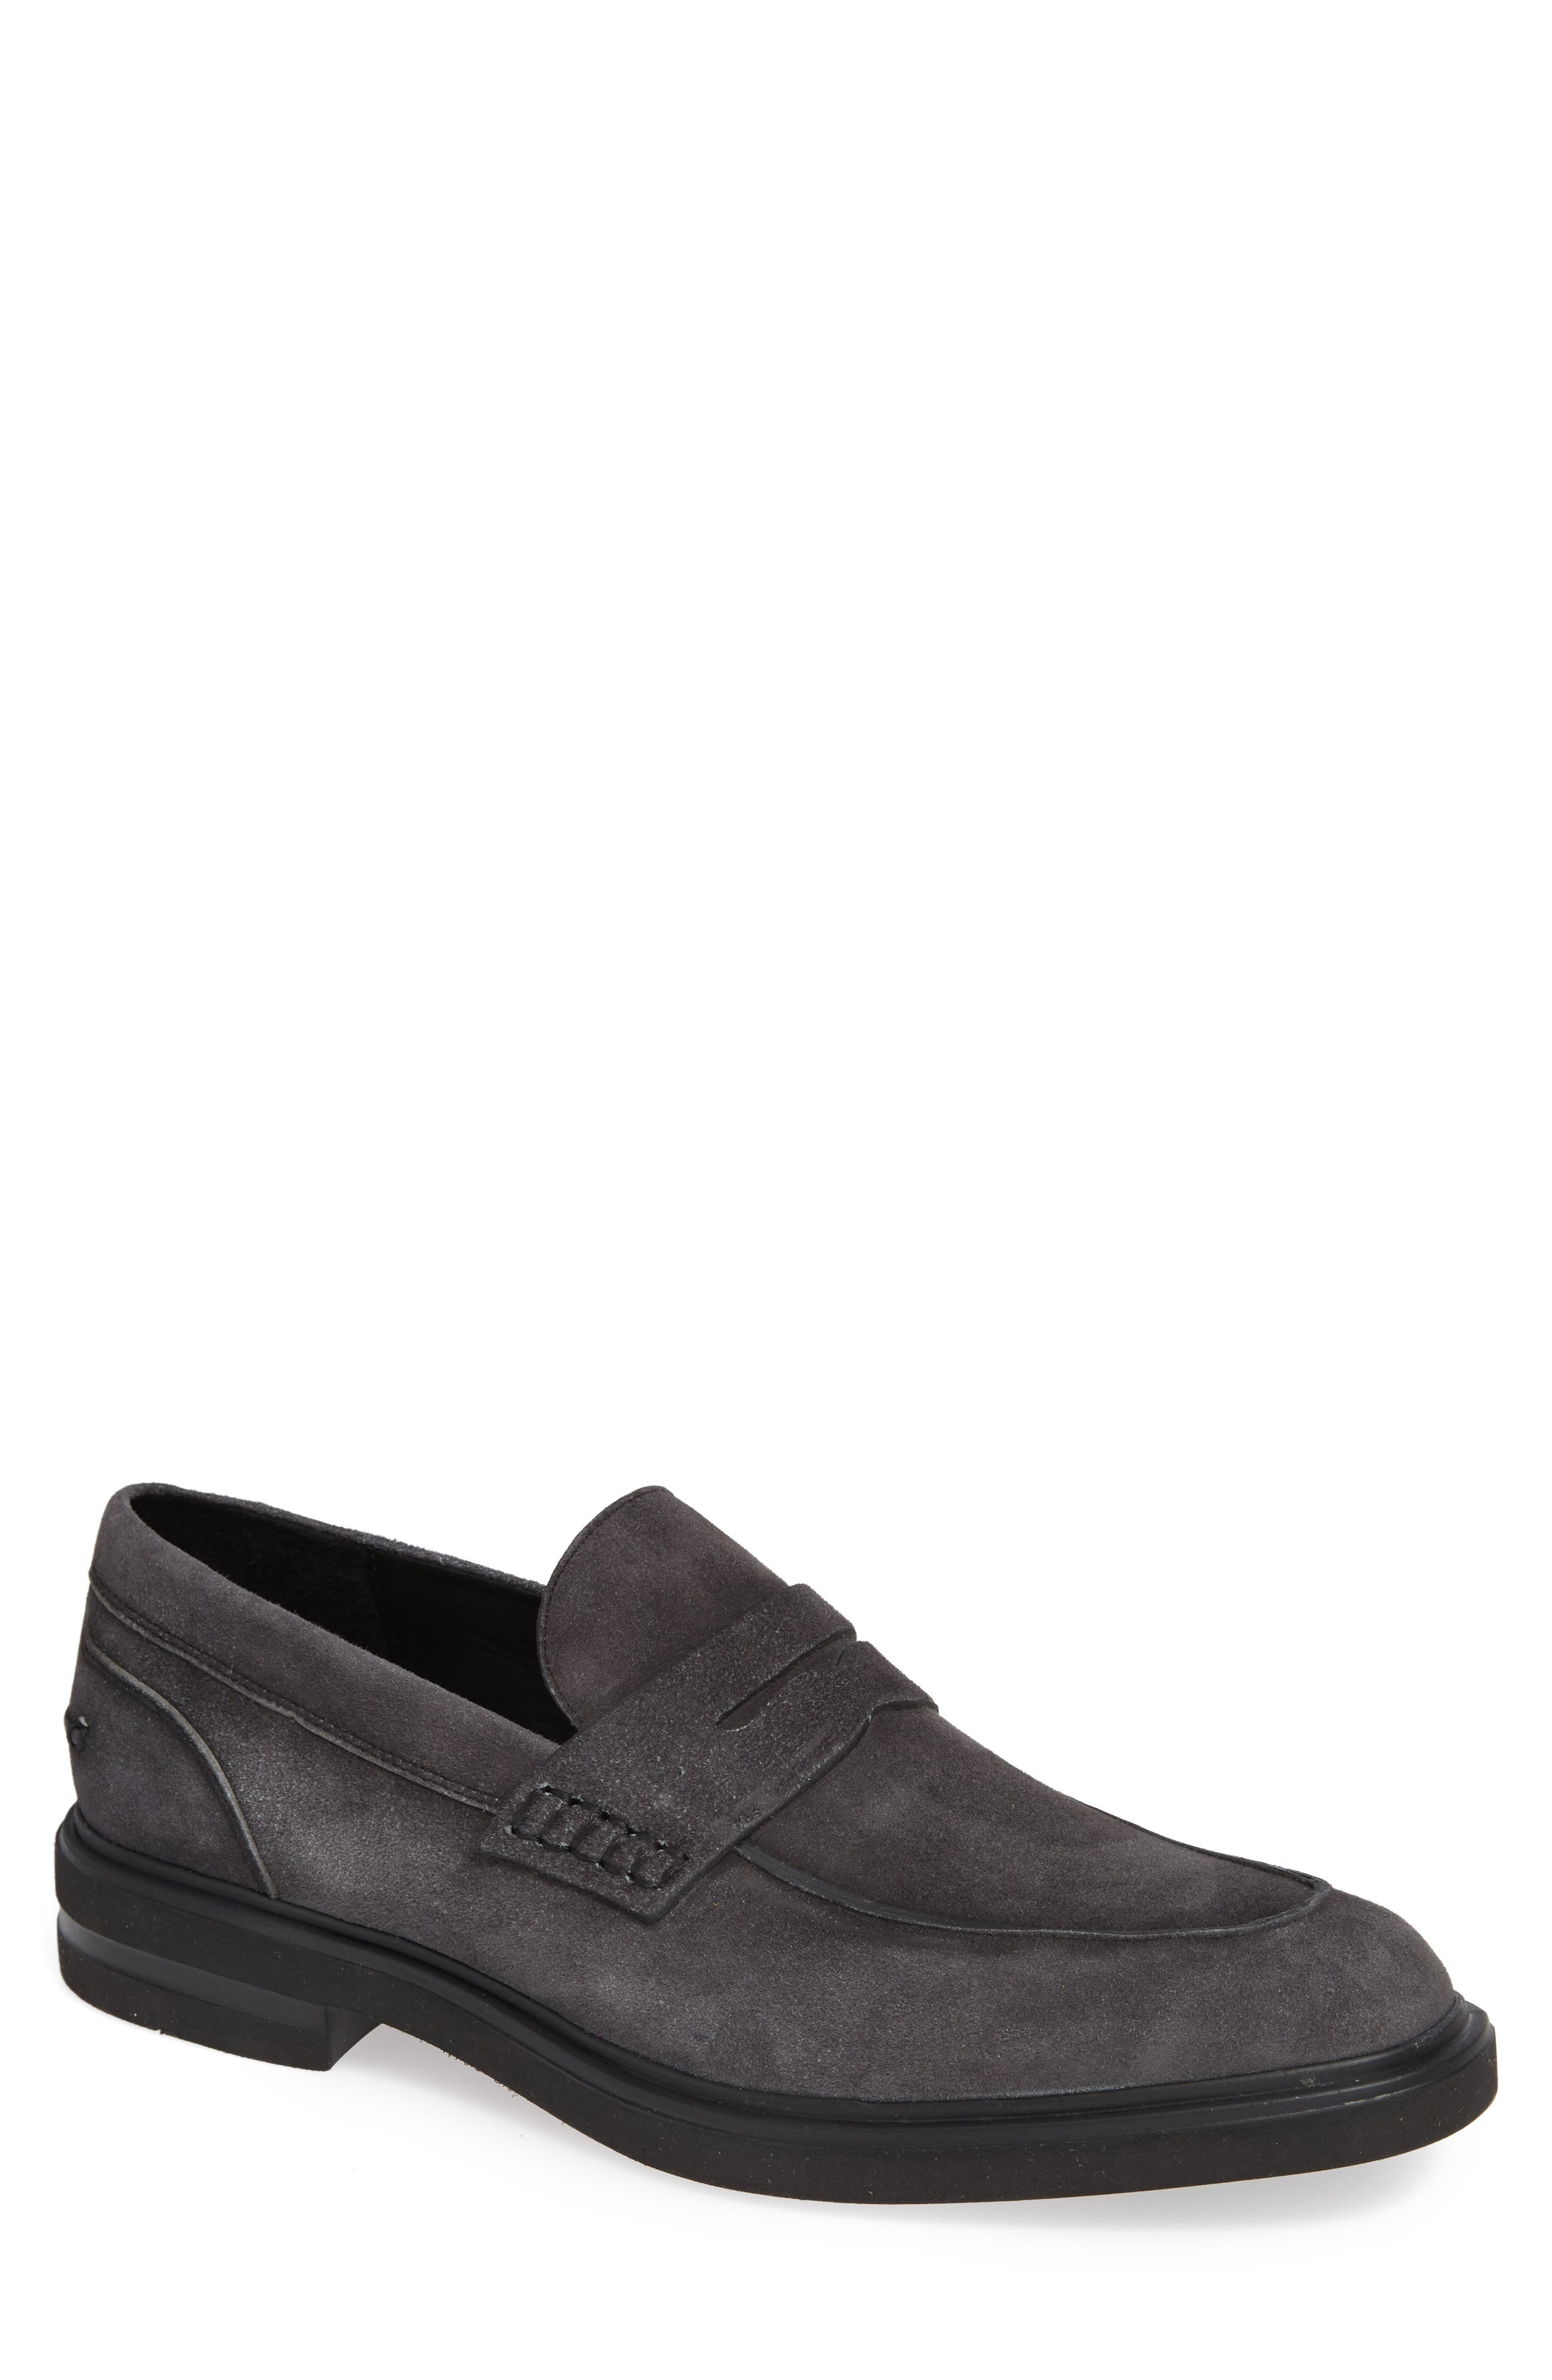 Edmund Penny Loafer,                             Main thumbnail 1, color,                             CHARCOAL